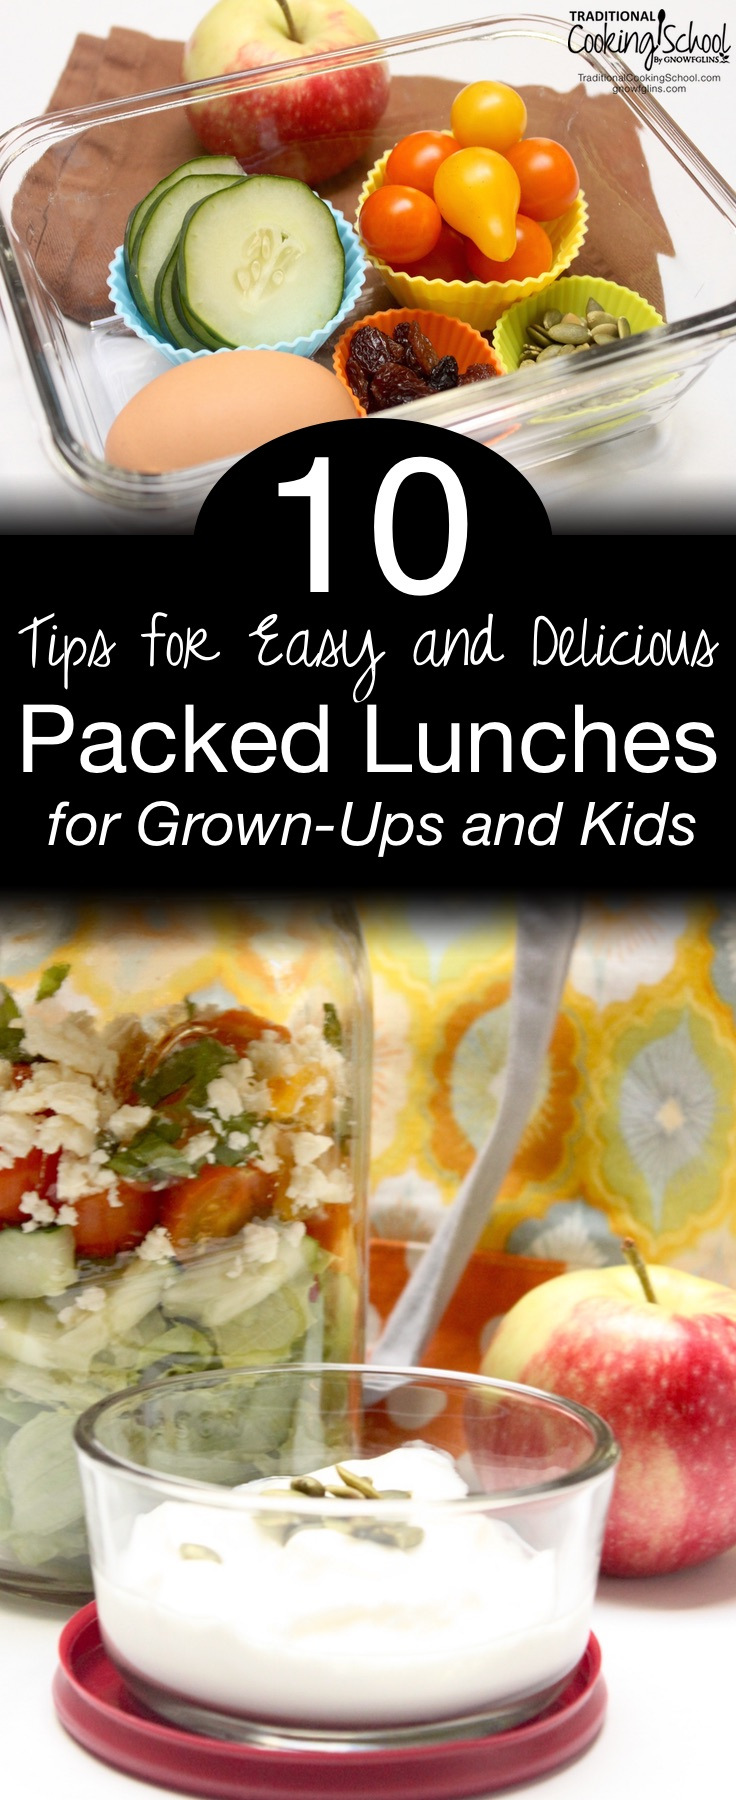 10 Tips for Easy and Delicious Packed Lunches {grown-ups and kids} | Is your lunch-packing enthusiasm waning? Do you find it hard to pack nutritious lunches that actually get eaten? Here are 10 tips to help you pack stress-free delicious lunches all week long -- that actually get eaten. | TraditionalCookingSchool.com